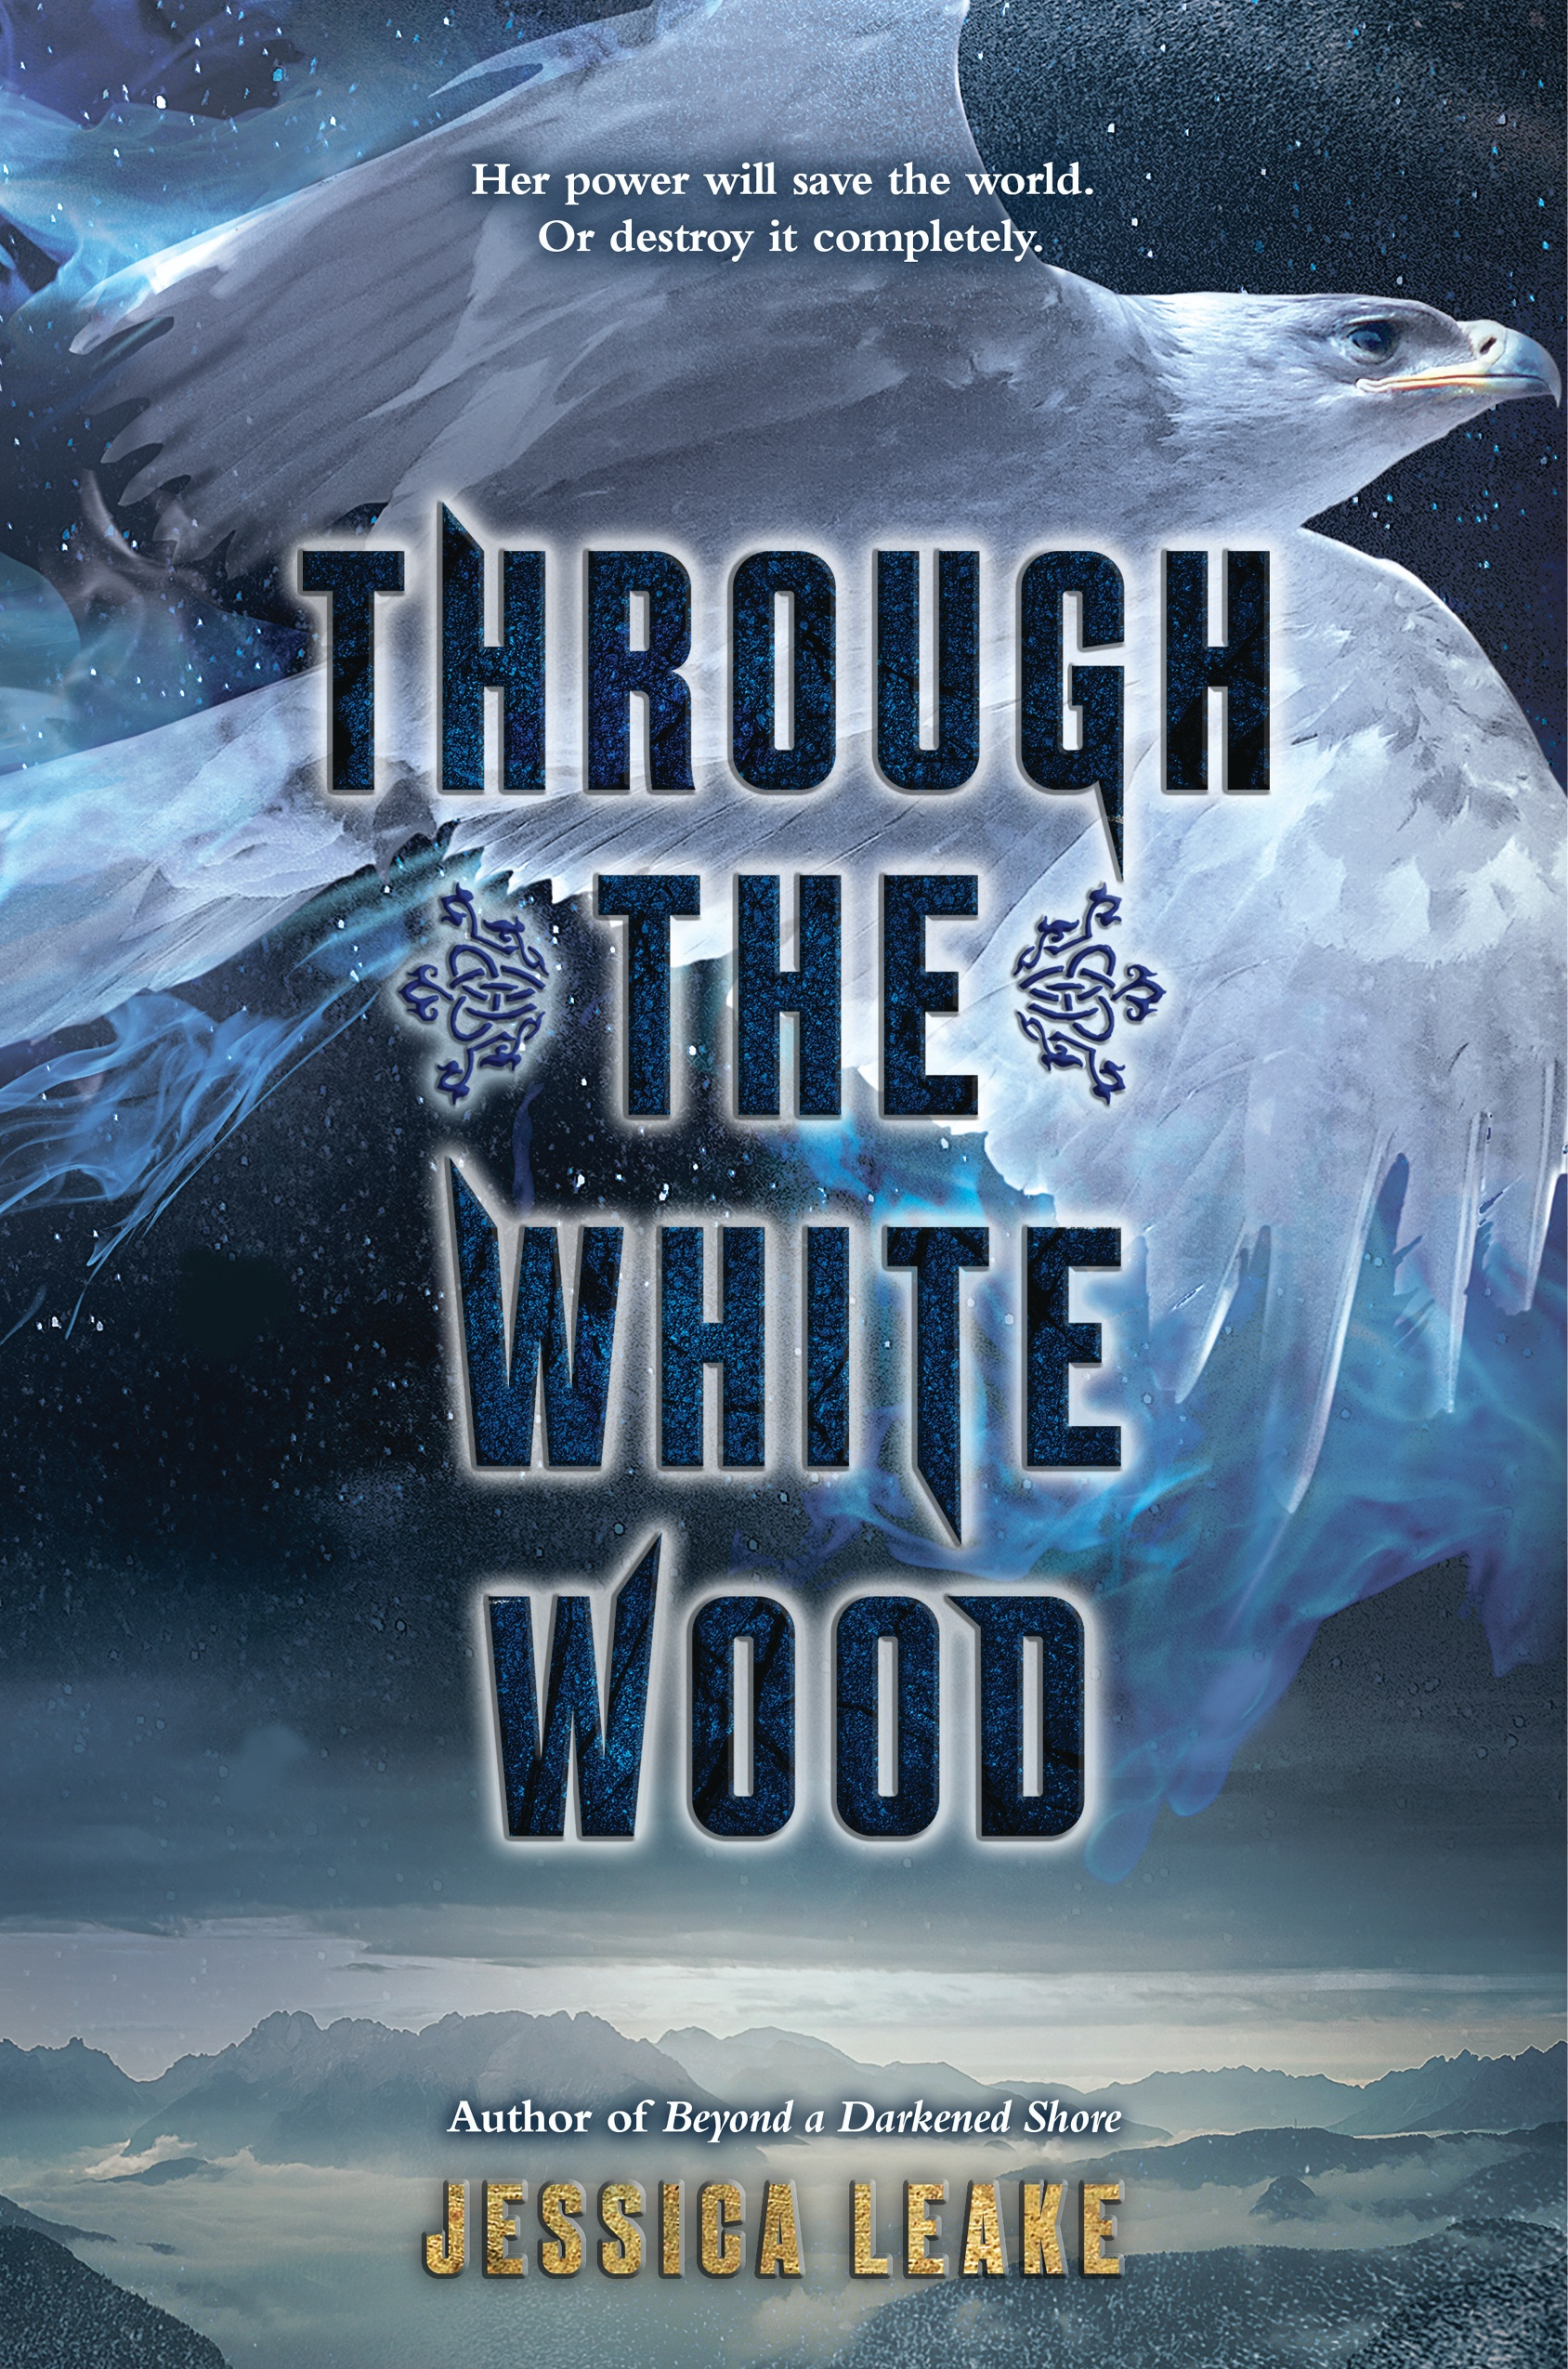 Blog Tour & Giveaway: Through The White Wood by Jessica Leake